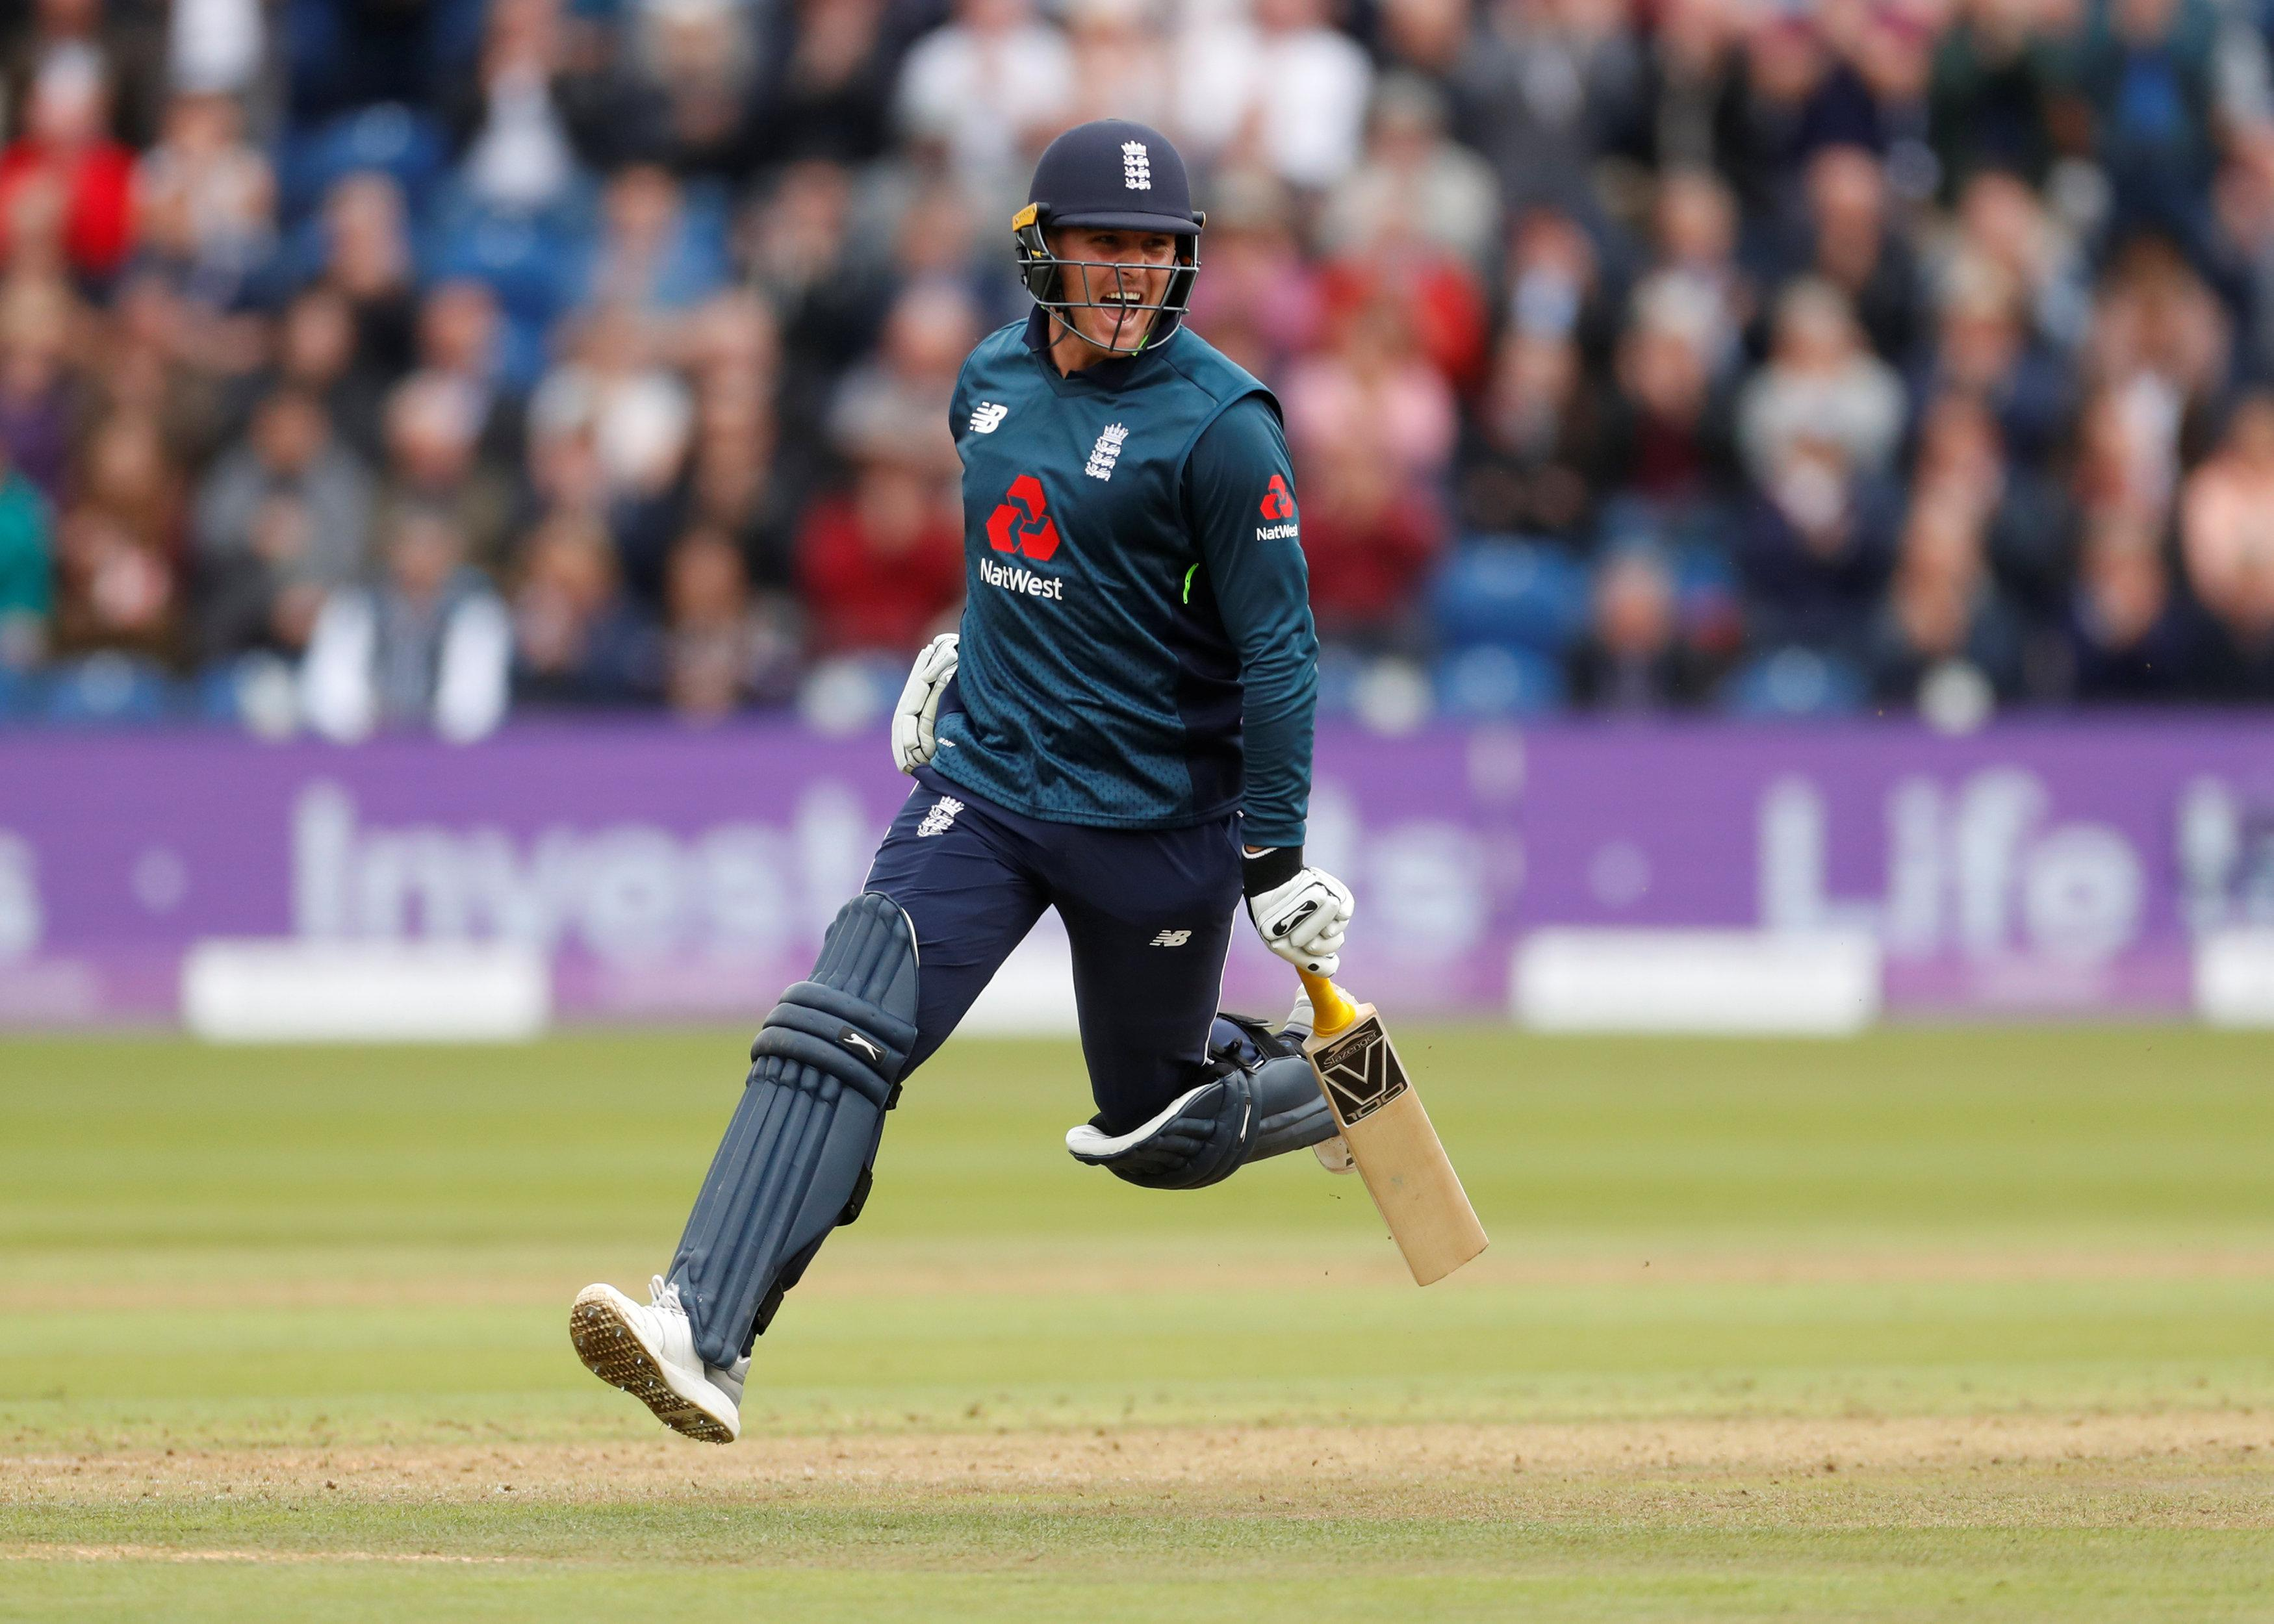 Jason Roy's century propelled England to a huge total and a 2-0 lead in the series